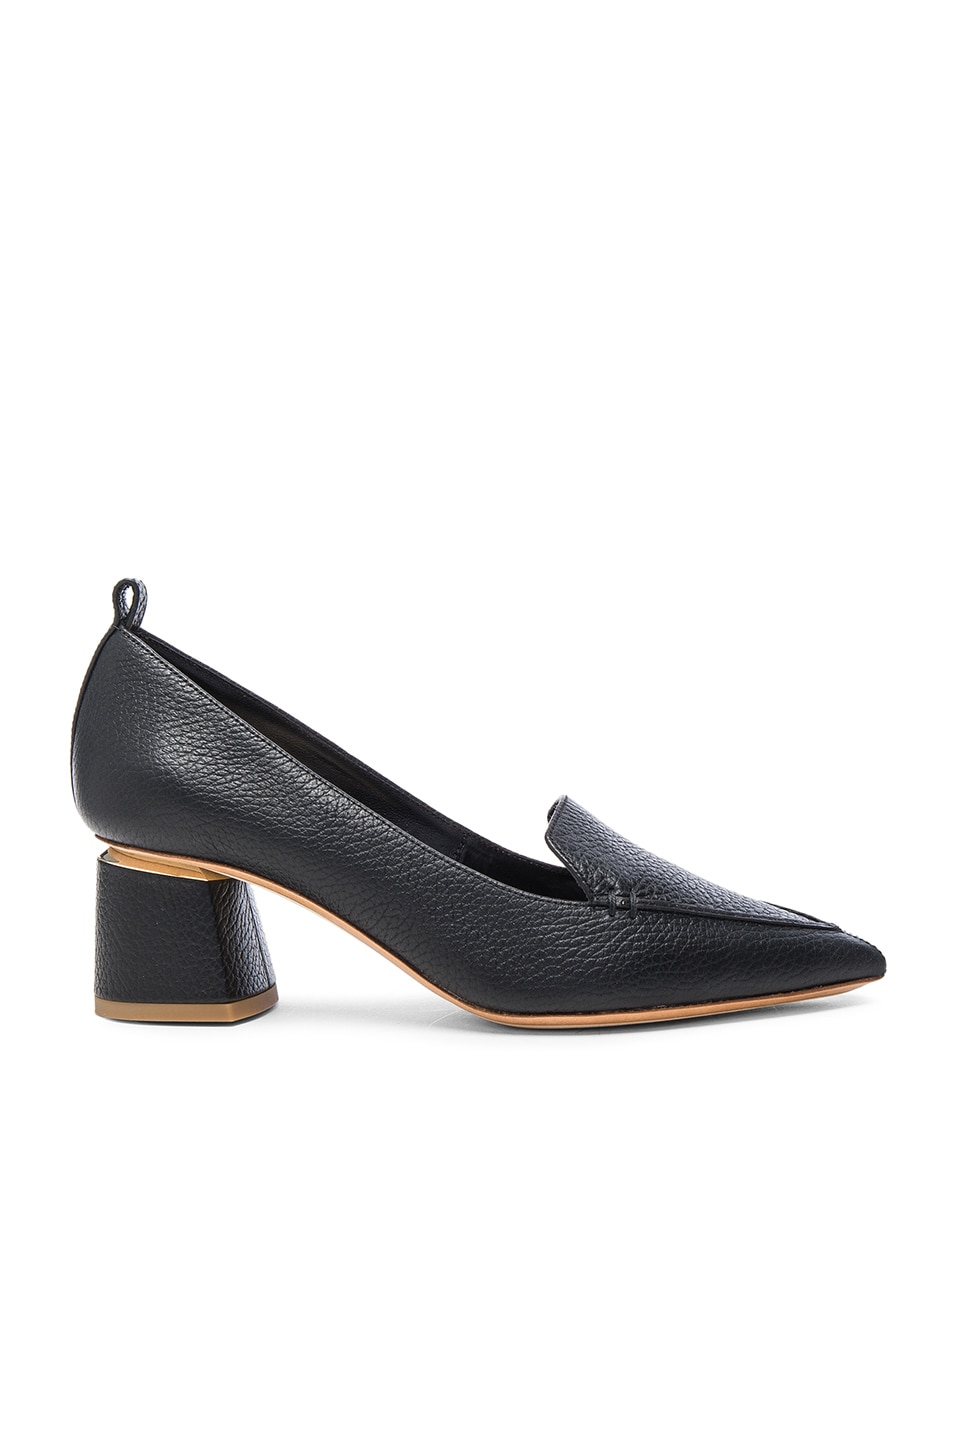 Image 1 of Nicholas Kirkwood Leather Beya Block Heels in Black